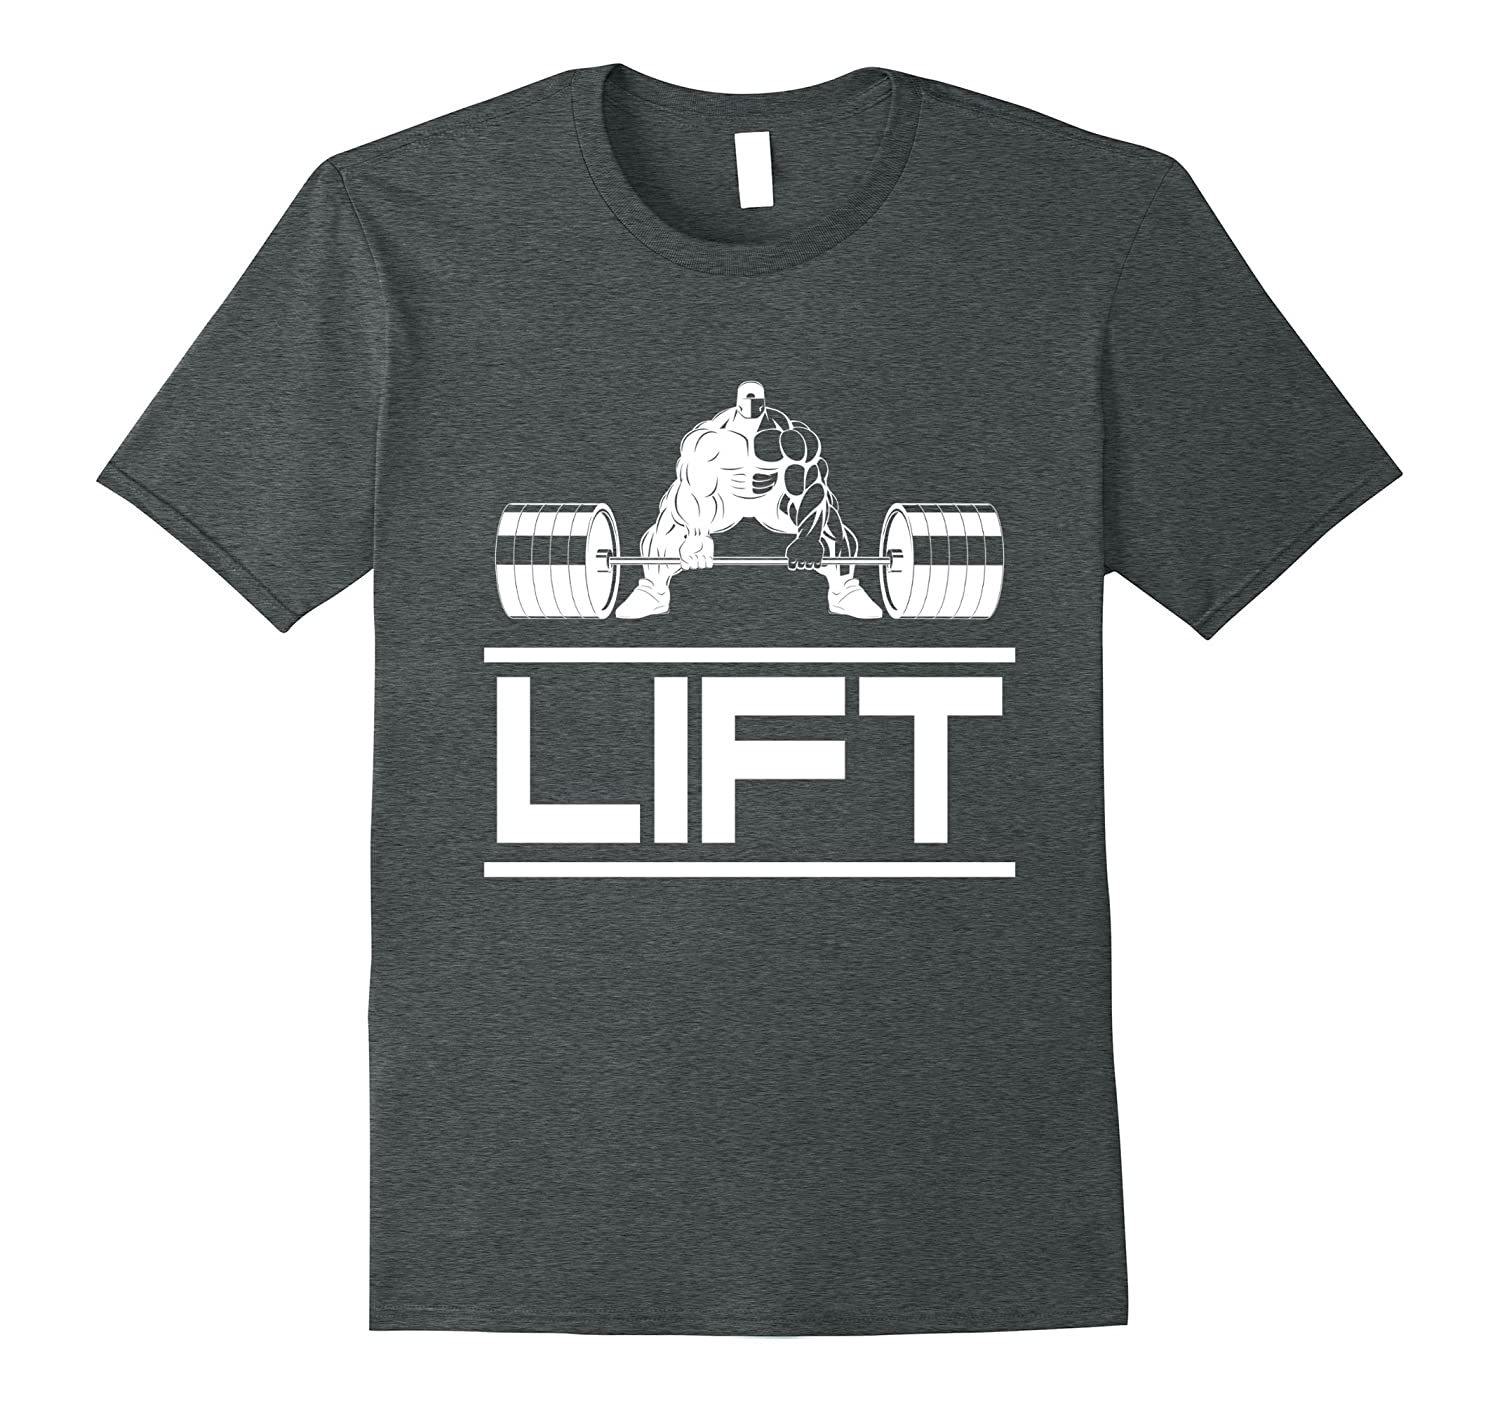 """Awesome """"LIFT"""" T-shirt for Gym Rats, Bodybuilders, Athletes"""